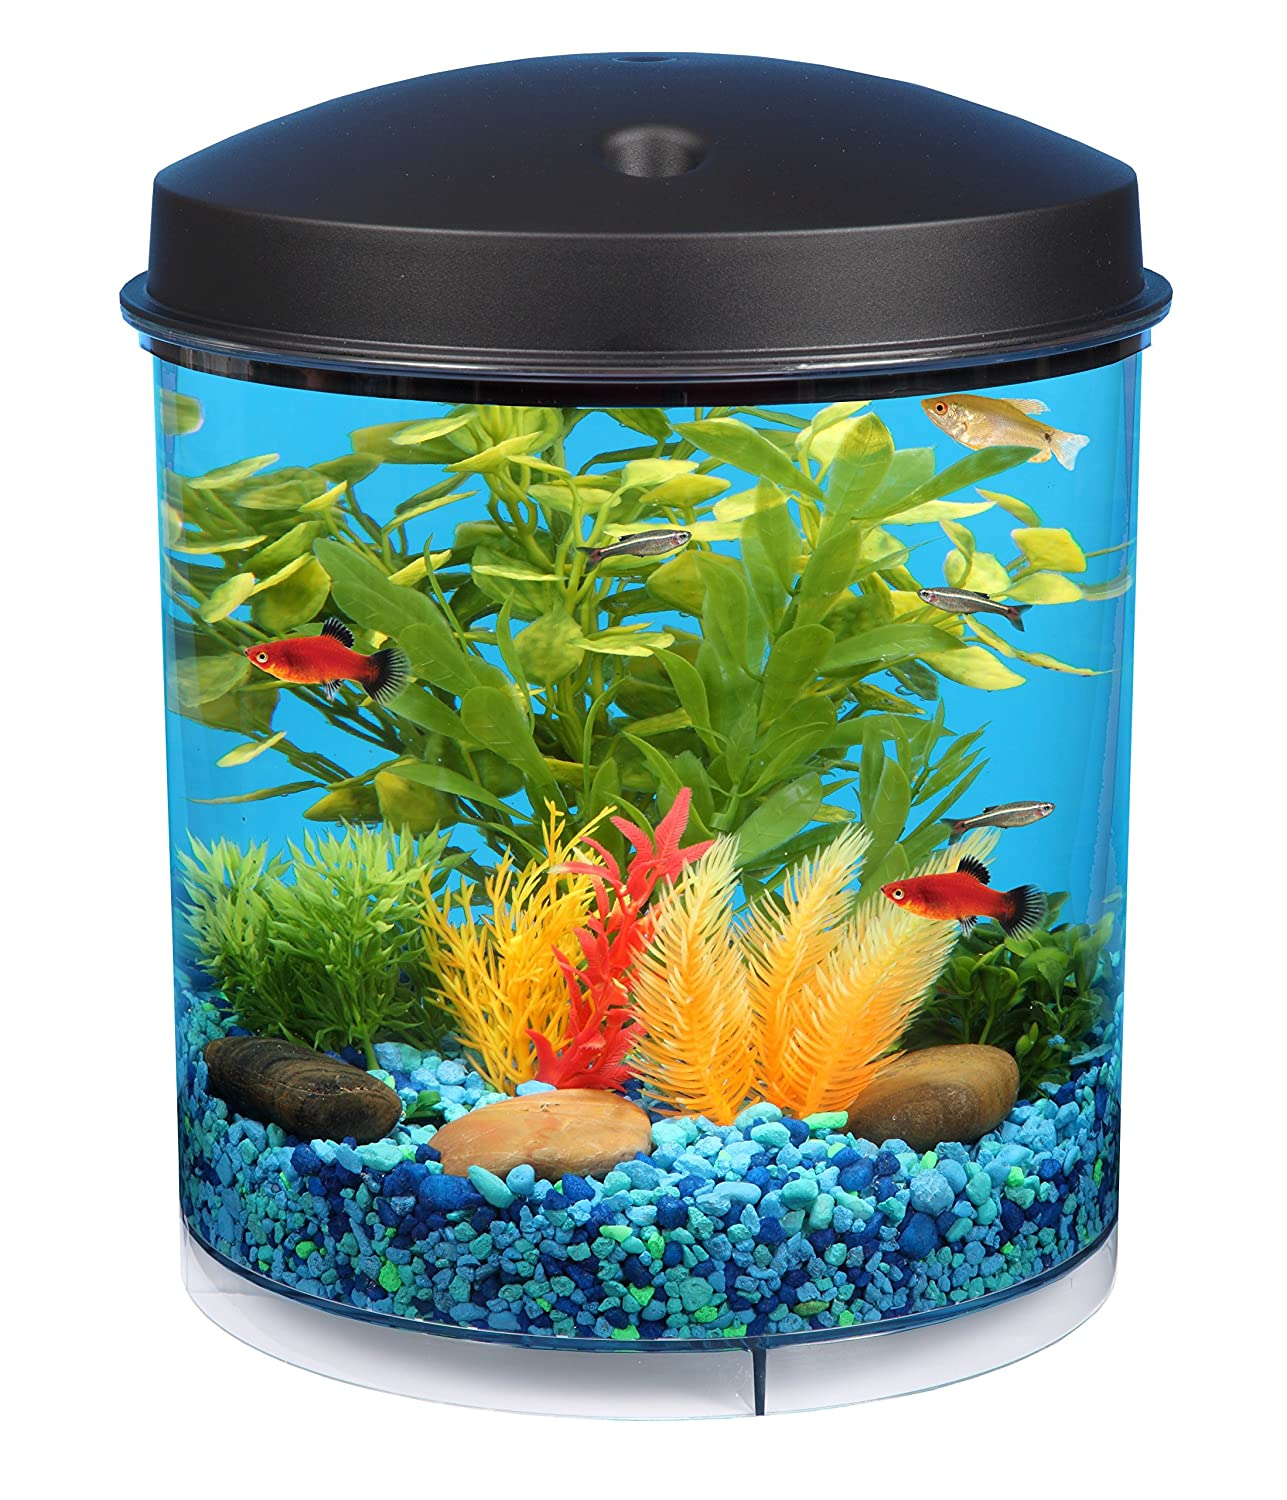 KollerCraft API Aquaview 360 Aquarium Kit with LED Lighting and Internal Filter, 2-Gallon